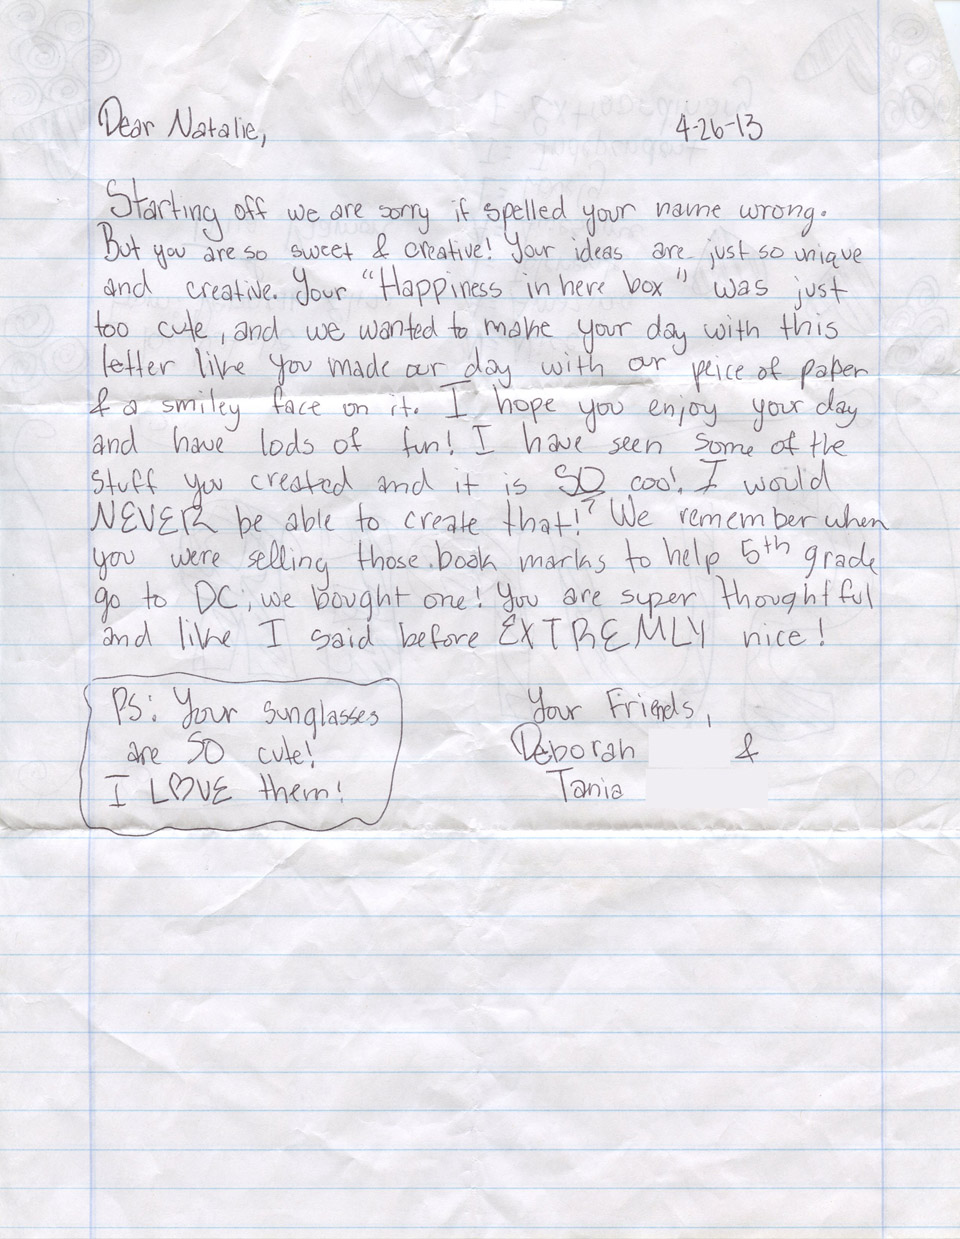 thank you letter to Natalie 2013 960